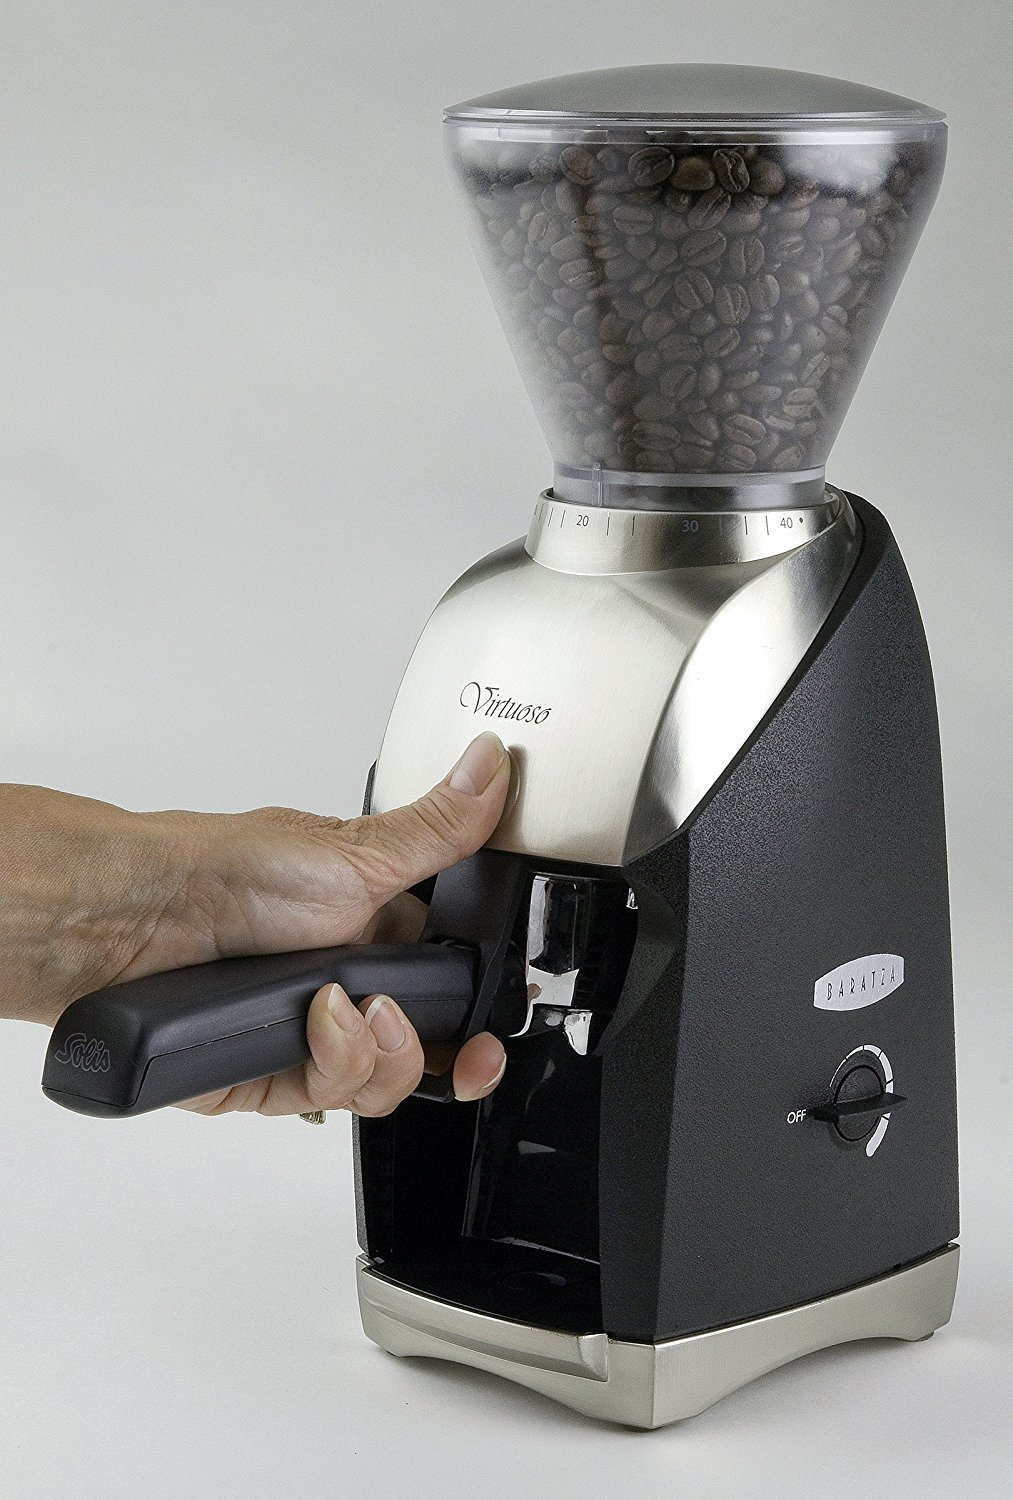 Baratza Virtuoso - Conical Burr Coffee Grinder 02